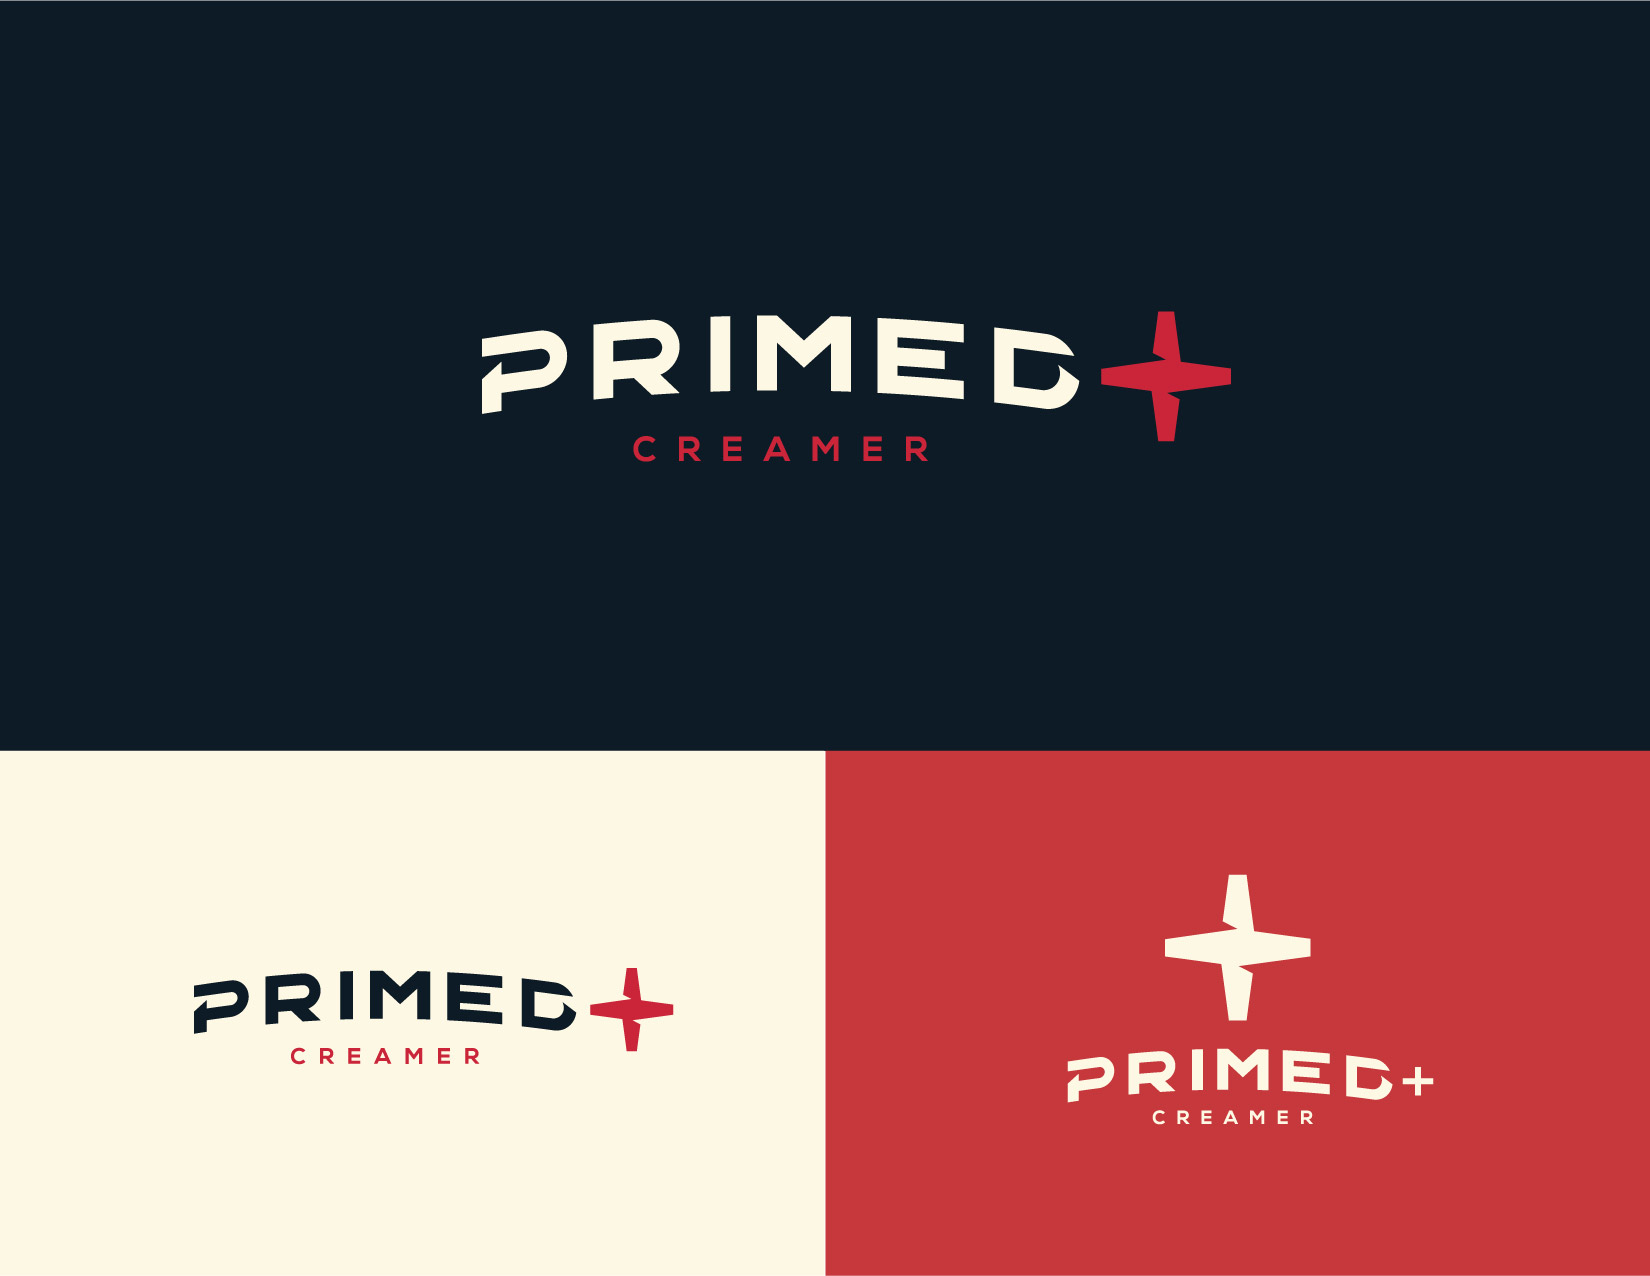 Logo design and branding for PRIMED+ protein coffee creamer. James Cannella Marketing, Design, and Artificial Intelligence Consulting Services